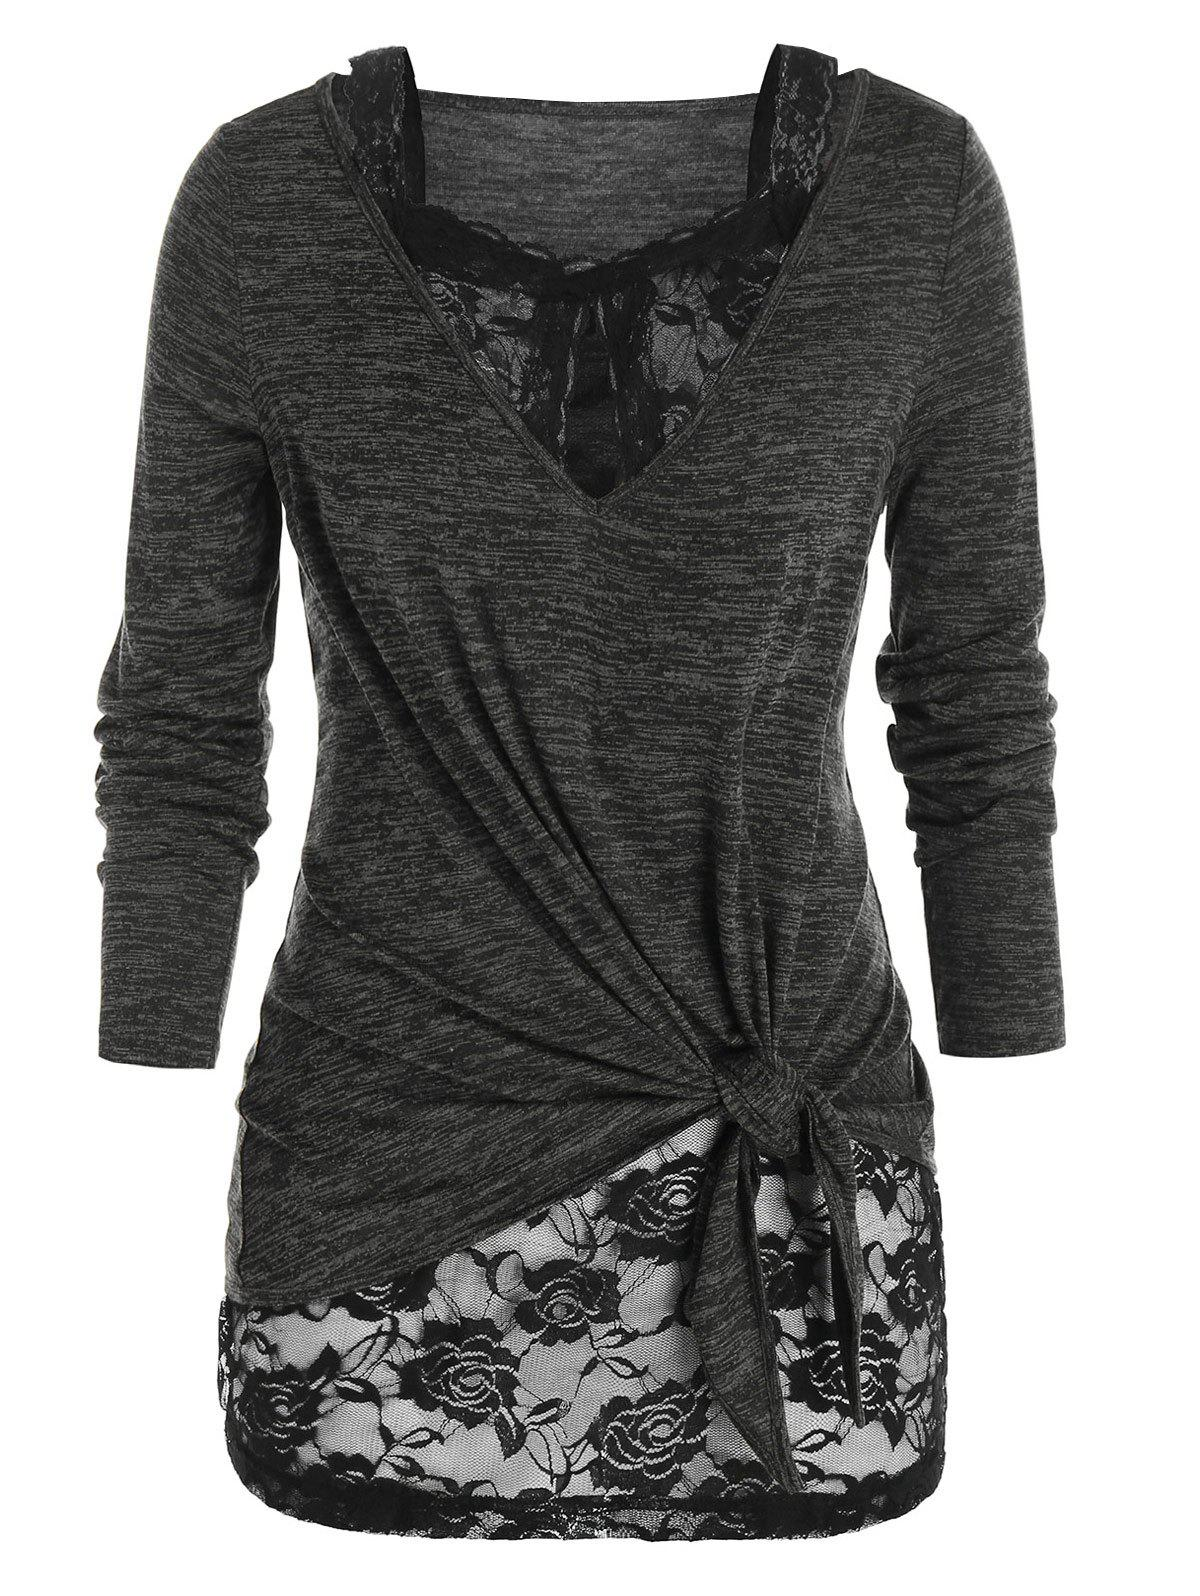 Plus Size Sheer Lace Knotted Two Piece T Shirt Sets - DARK GRAY 1X